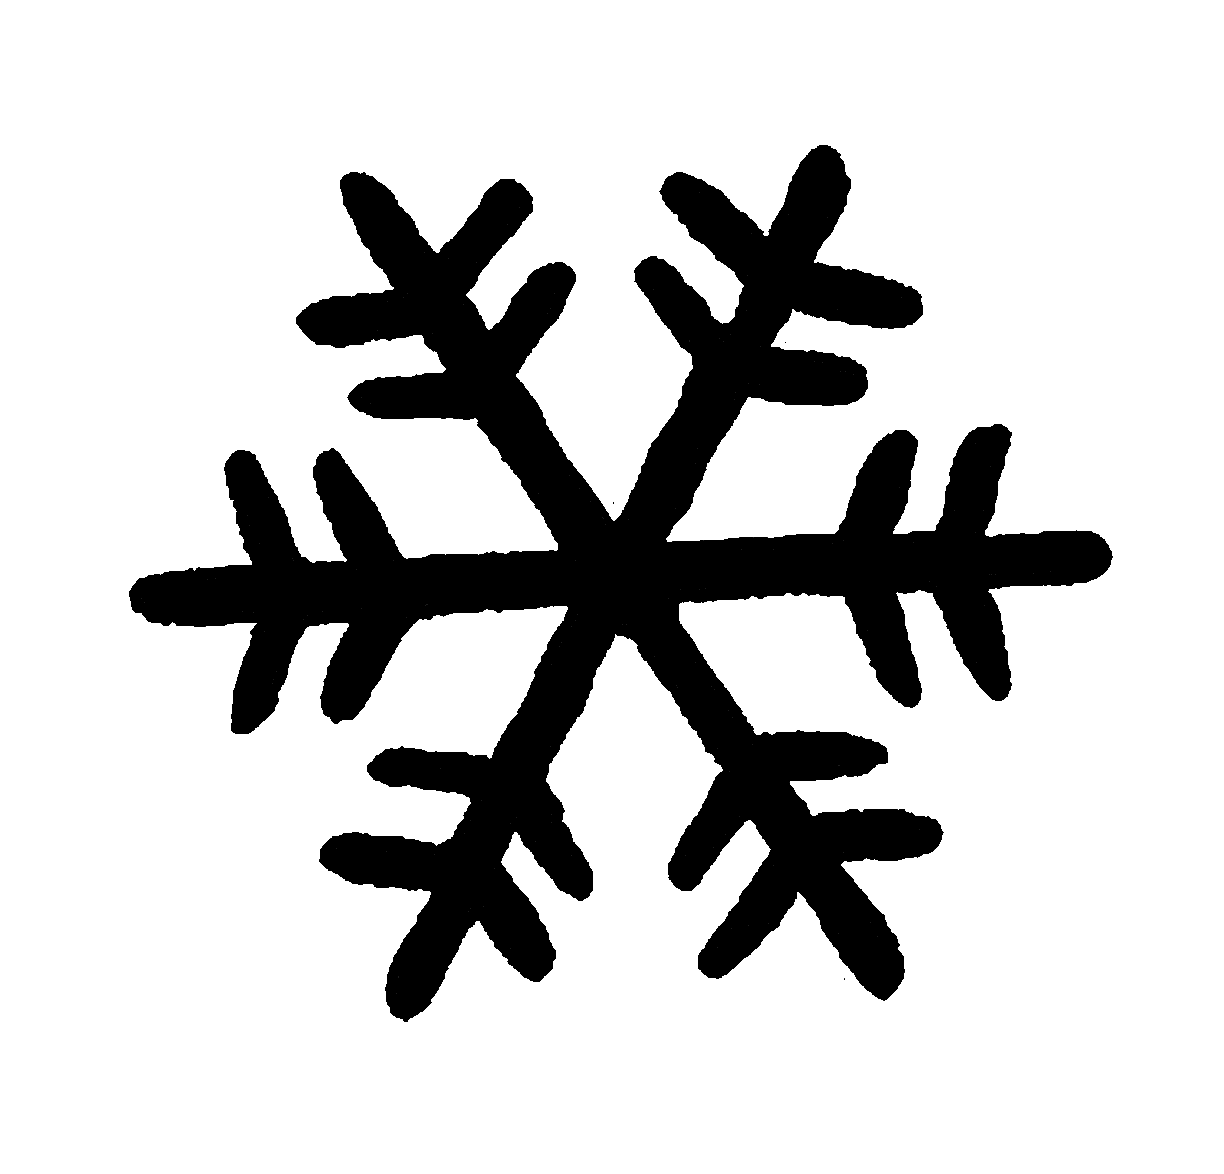 Clipart simple snowflake clipart black and white download Snowflake clipart silhouette #718820 - free Snowflake clipart ... clipart black and white download